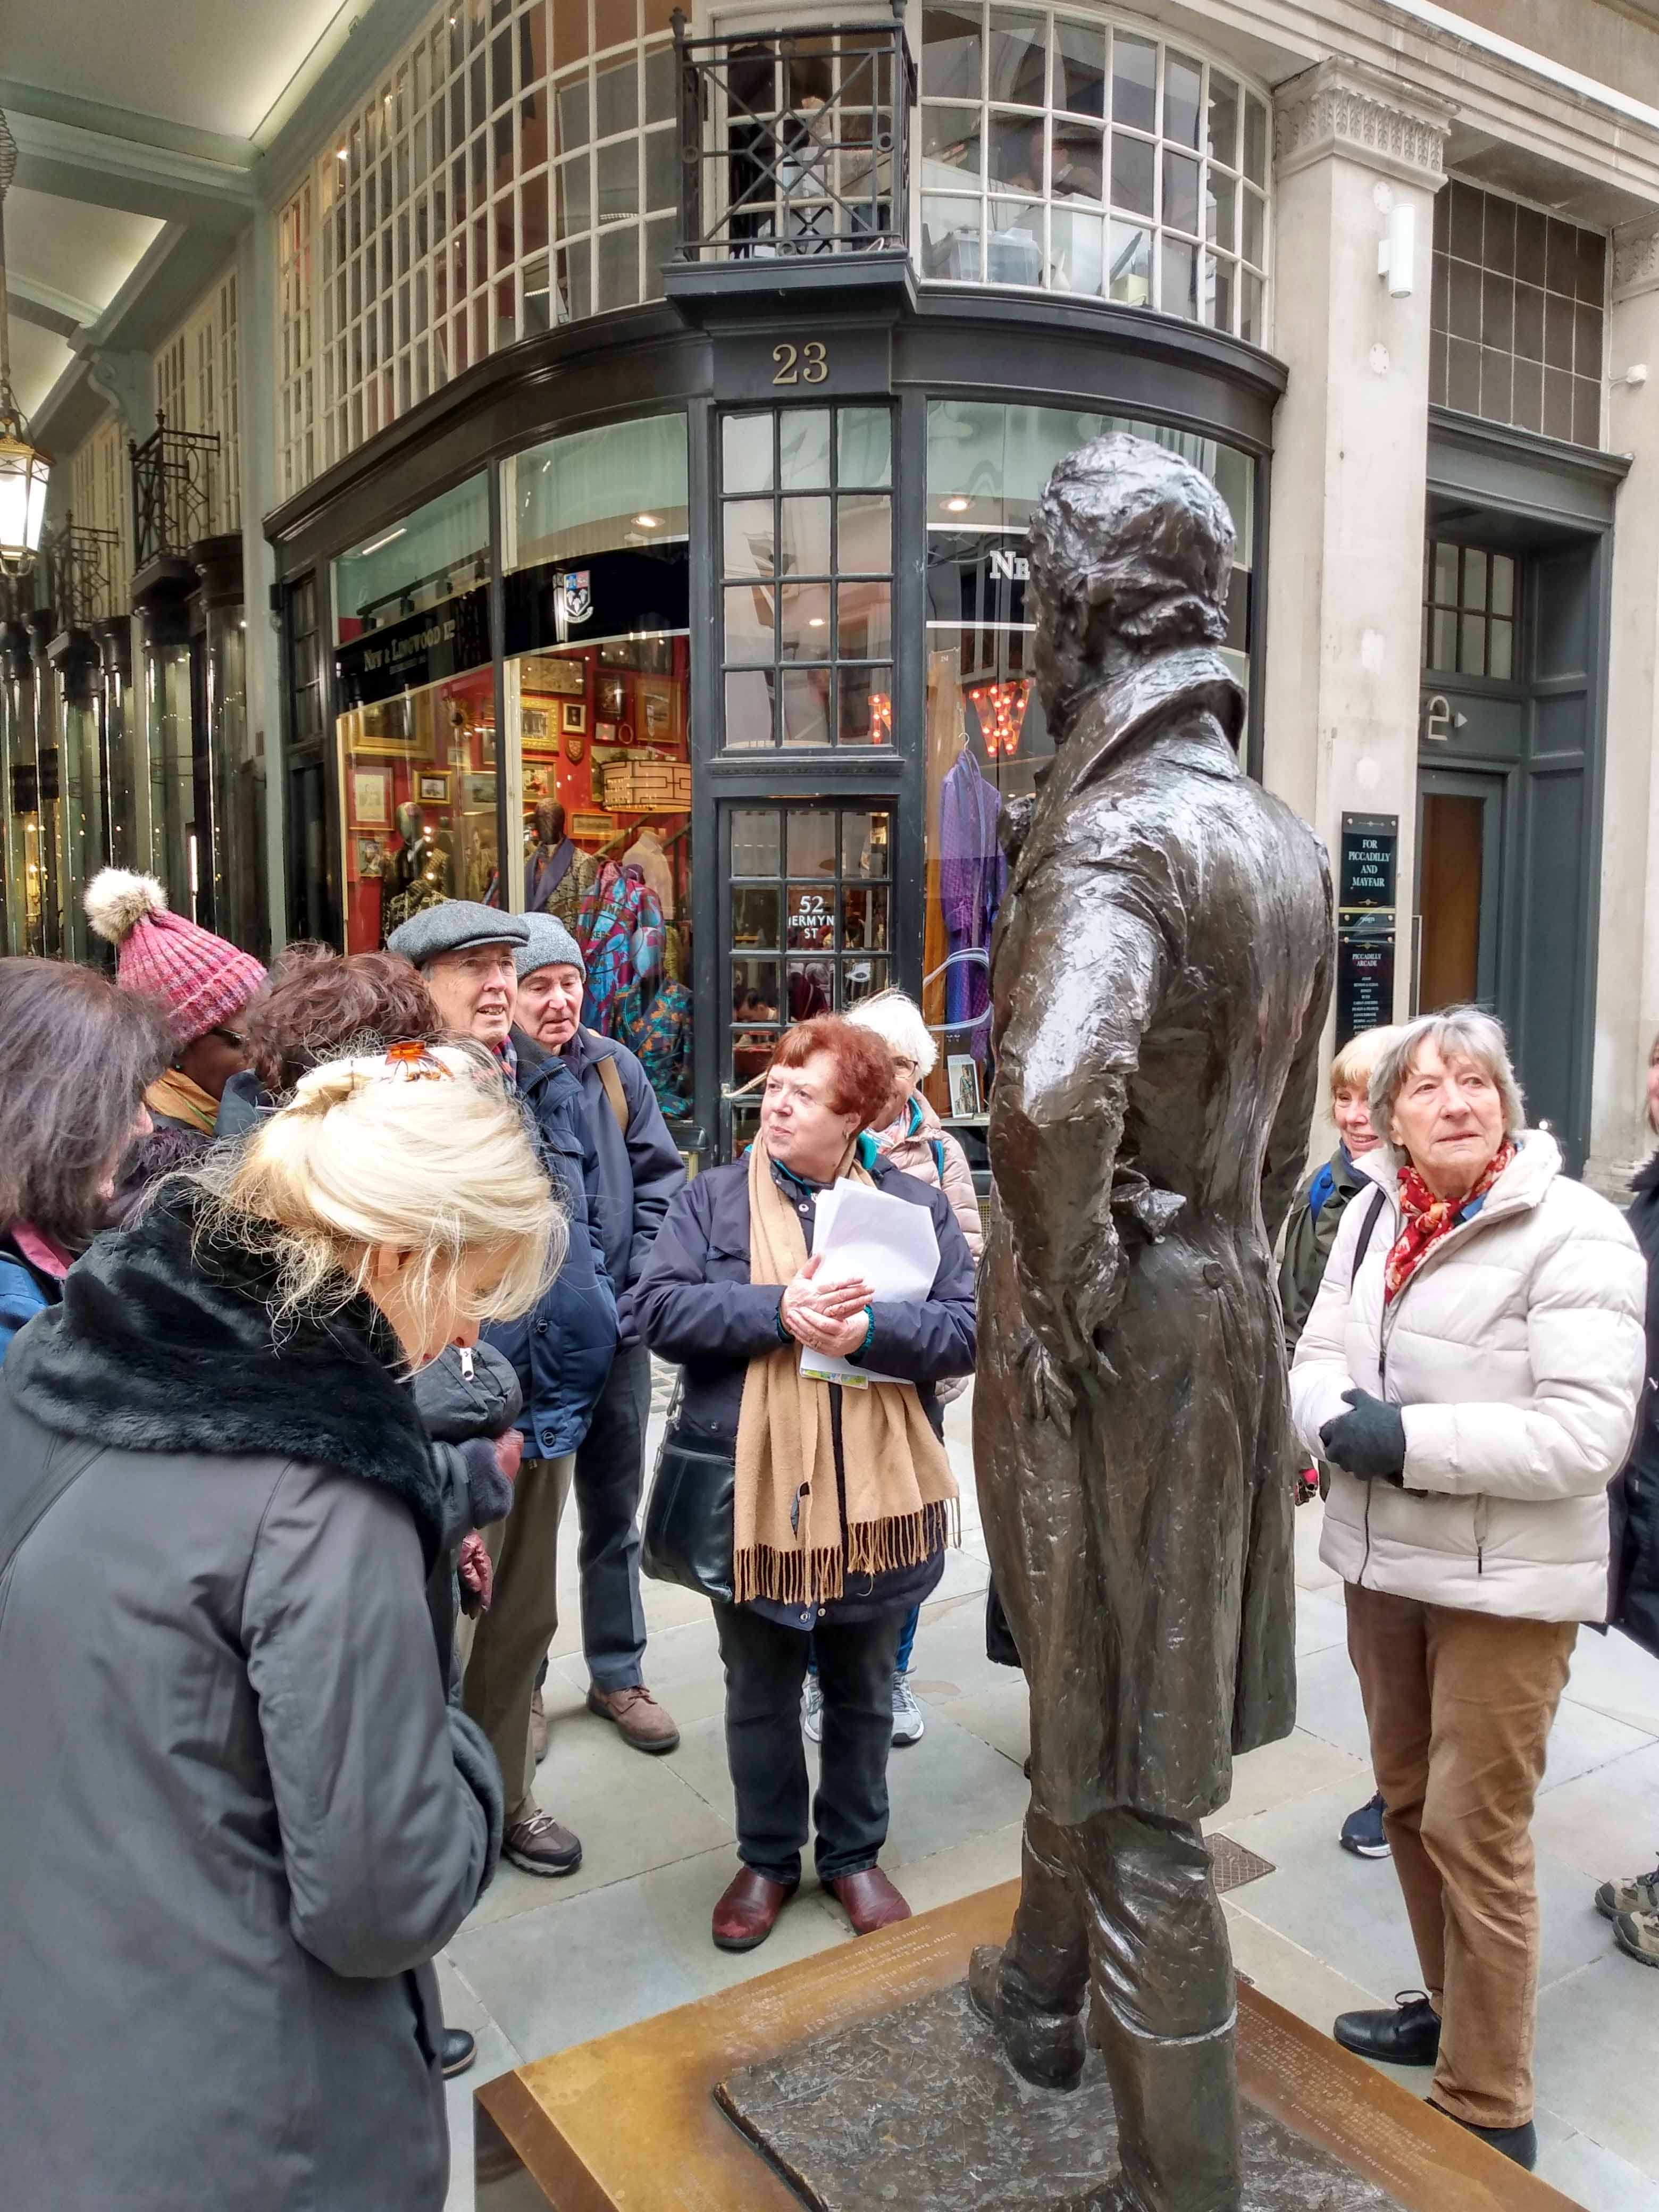 At the Beau Brummell statue